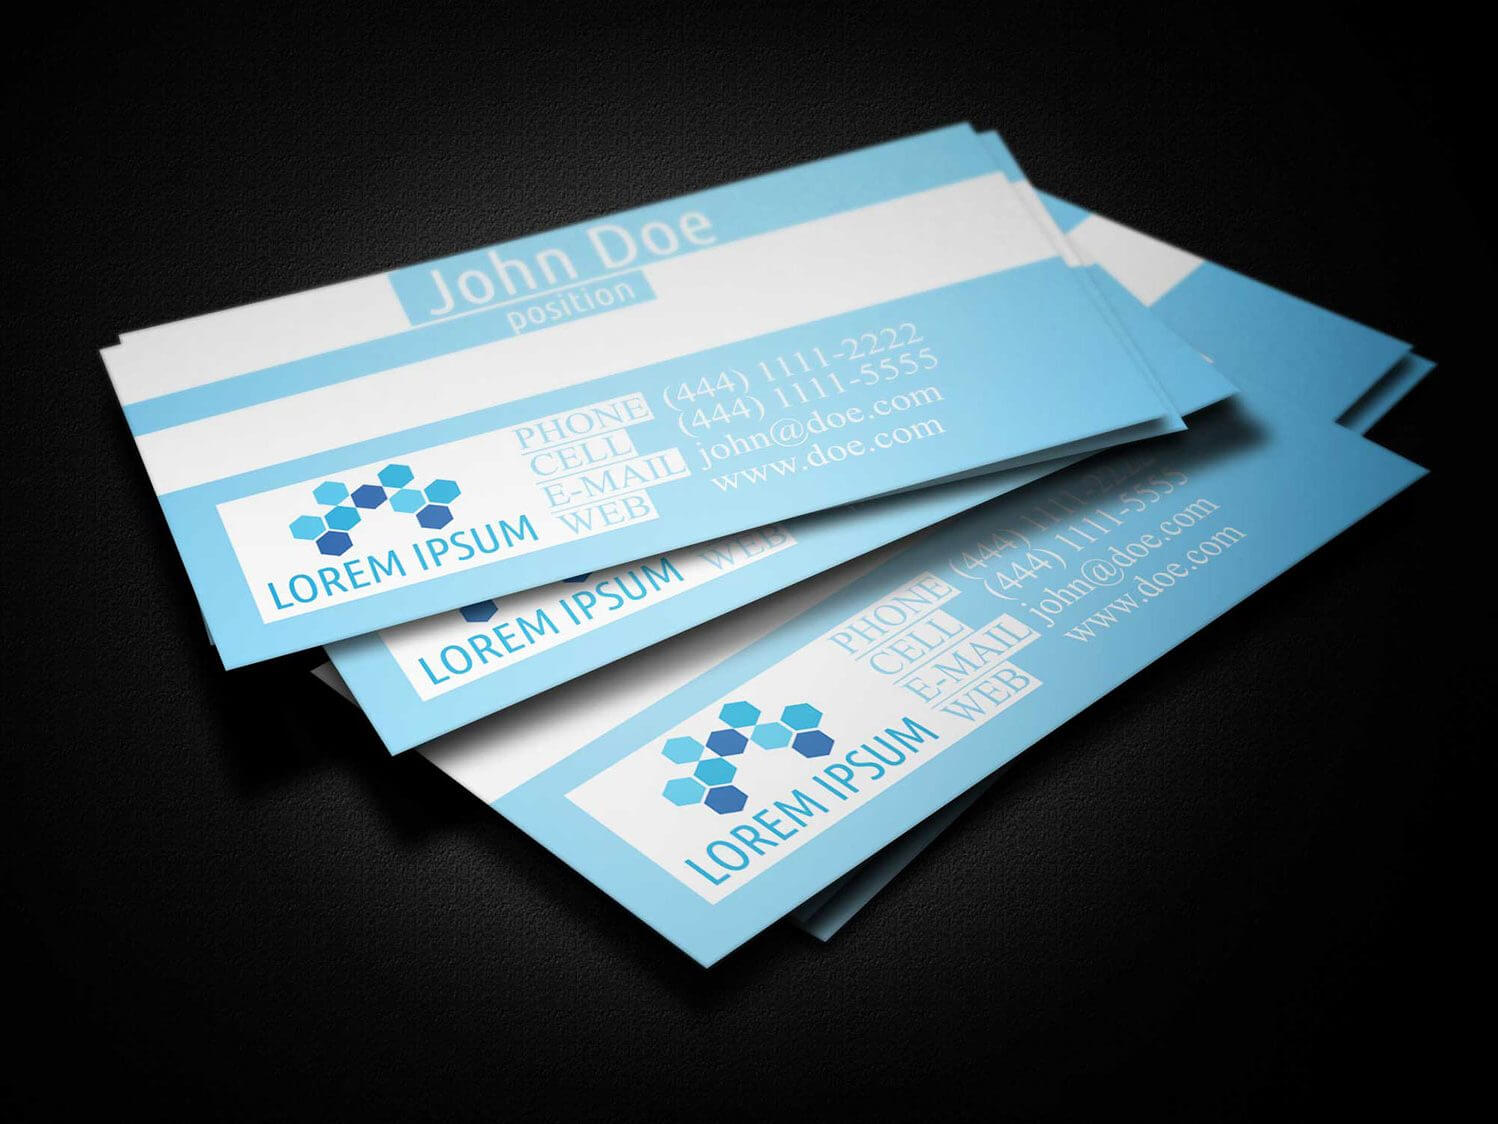 Blue Medical Business Card Template - Business Cards Lab Regarding Medical Business Cards Templates Free